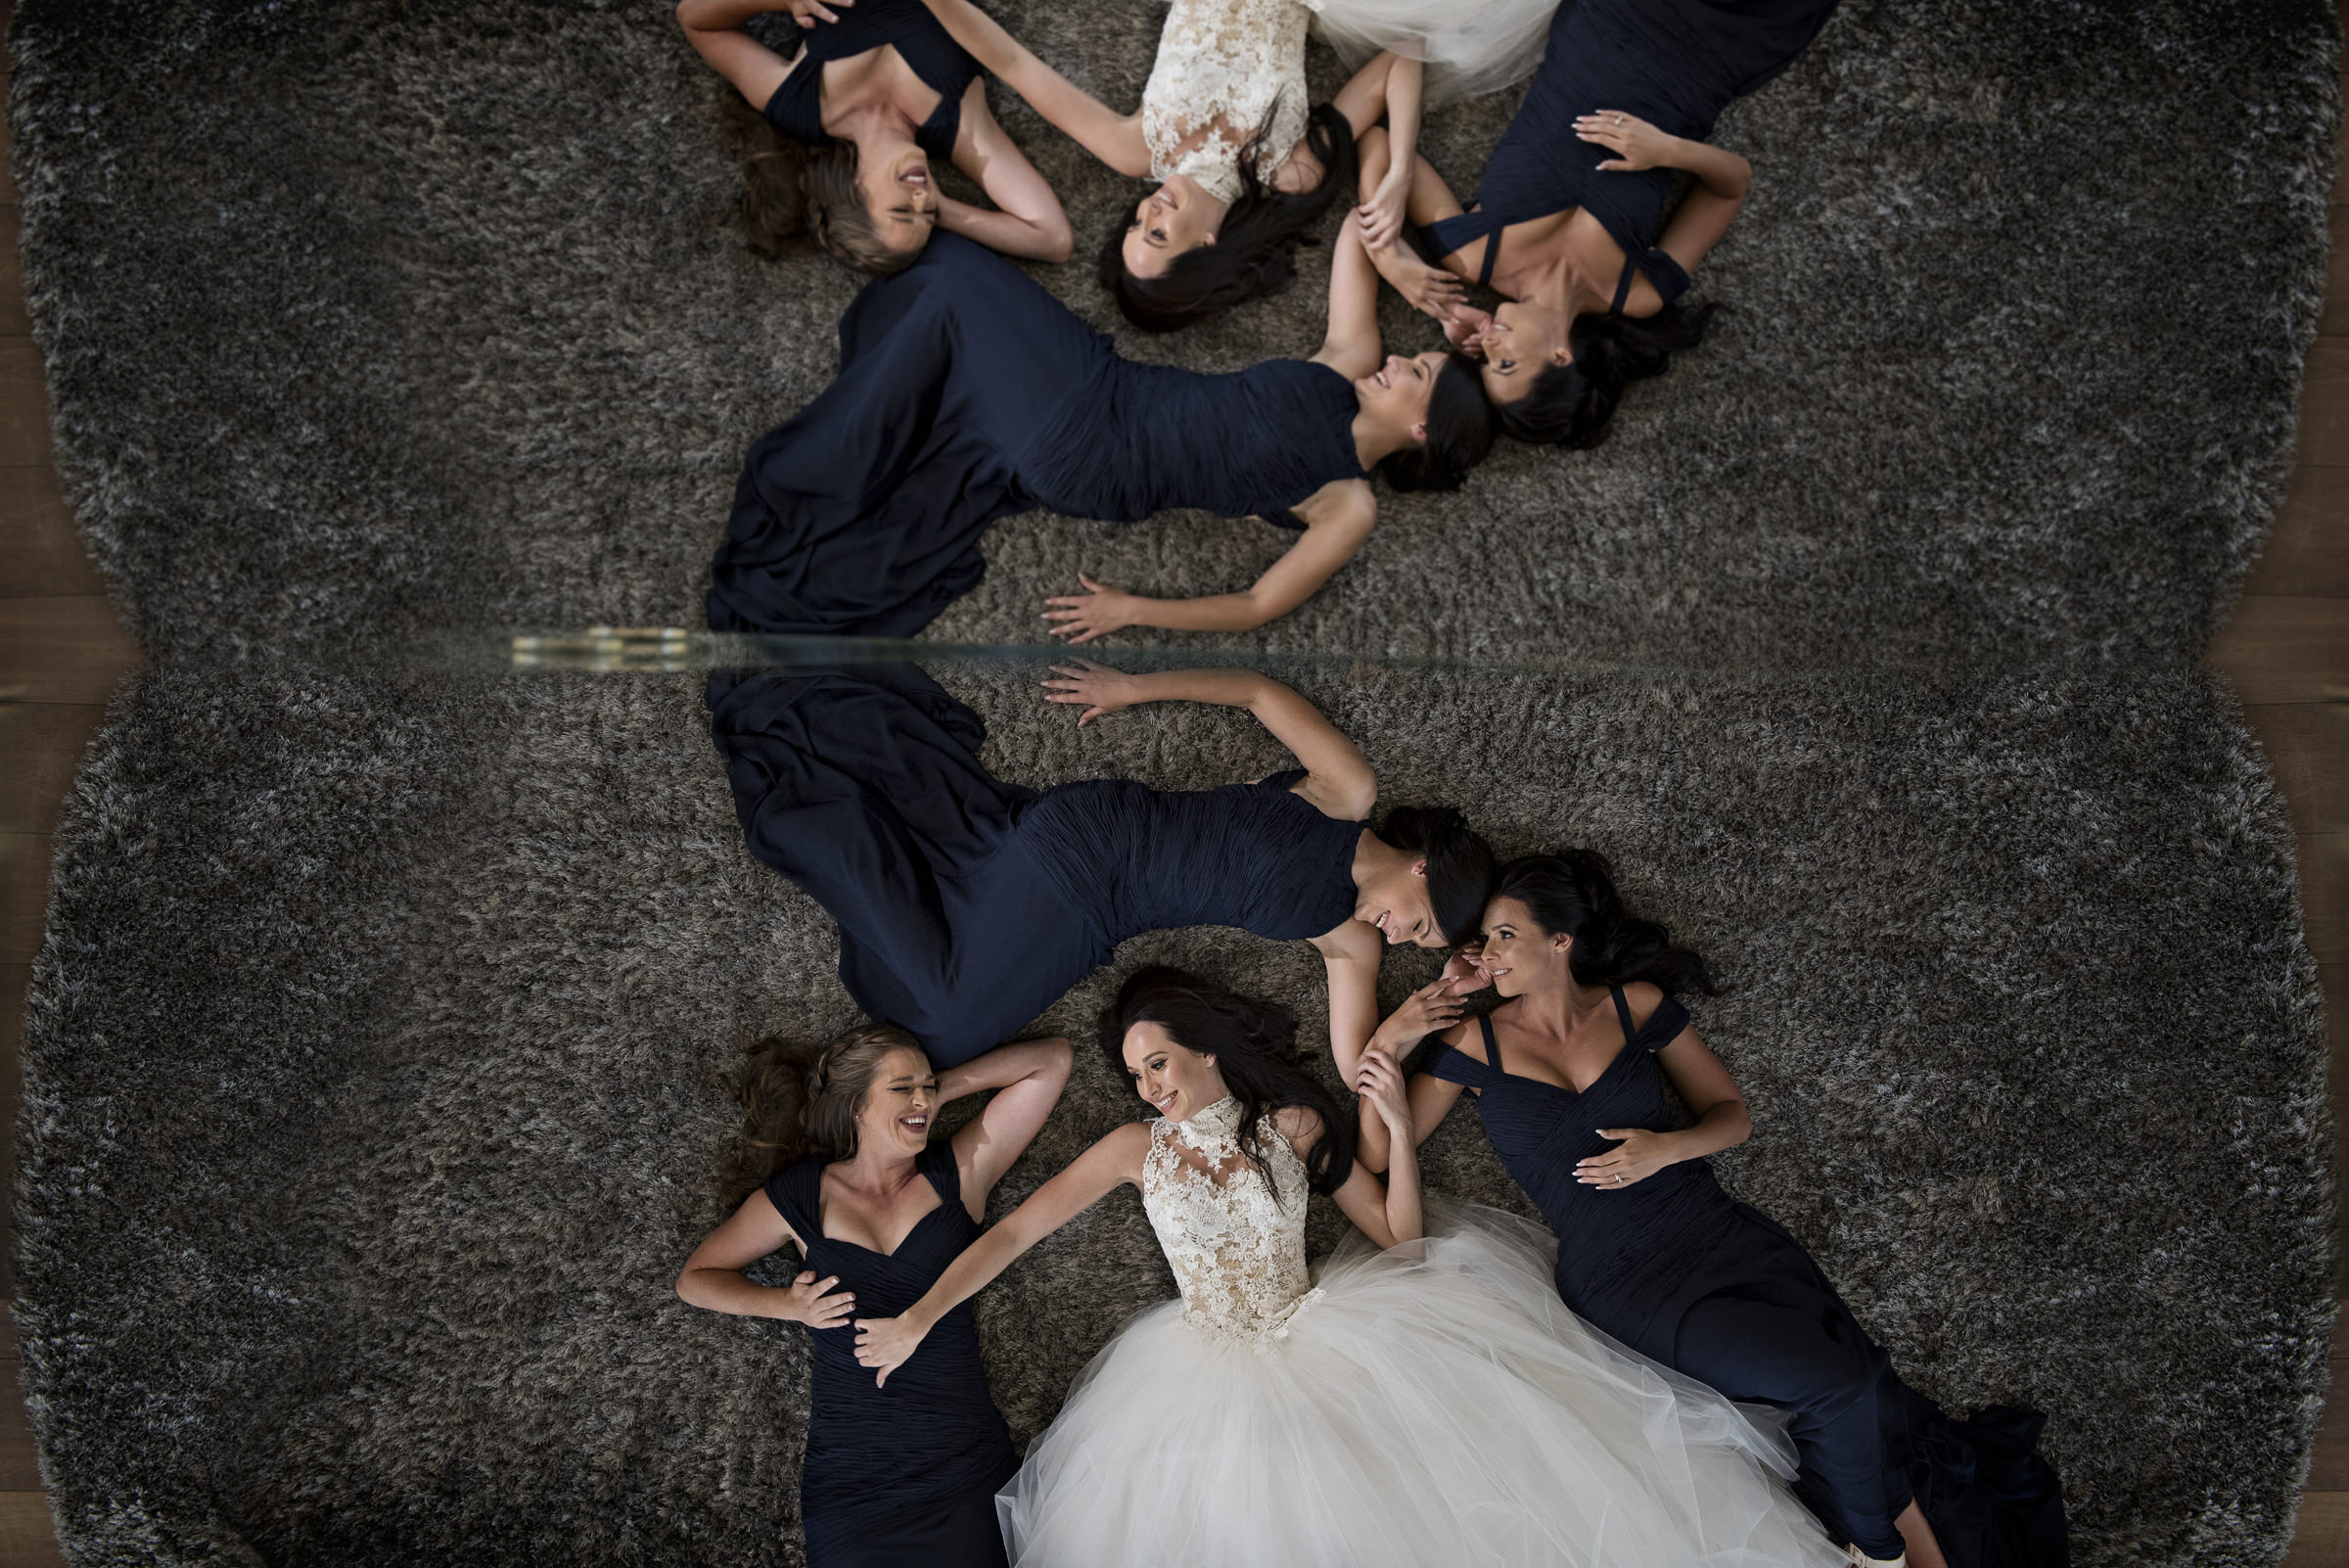 Bride and bridesmaids reflected in mirror- photo by Jacki Bruniquel